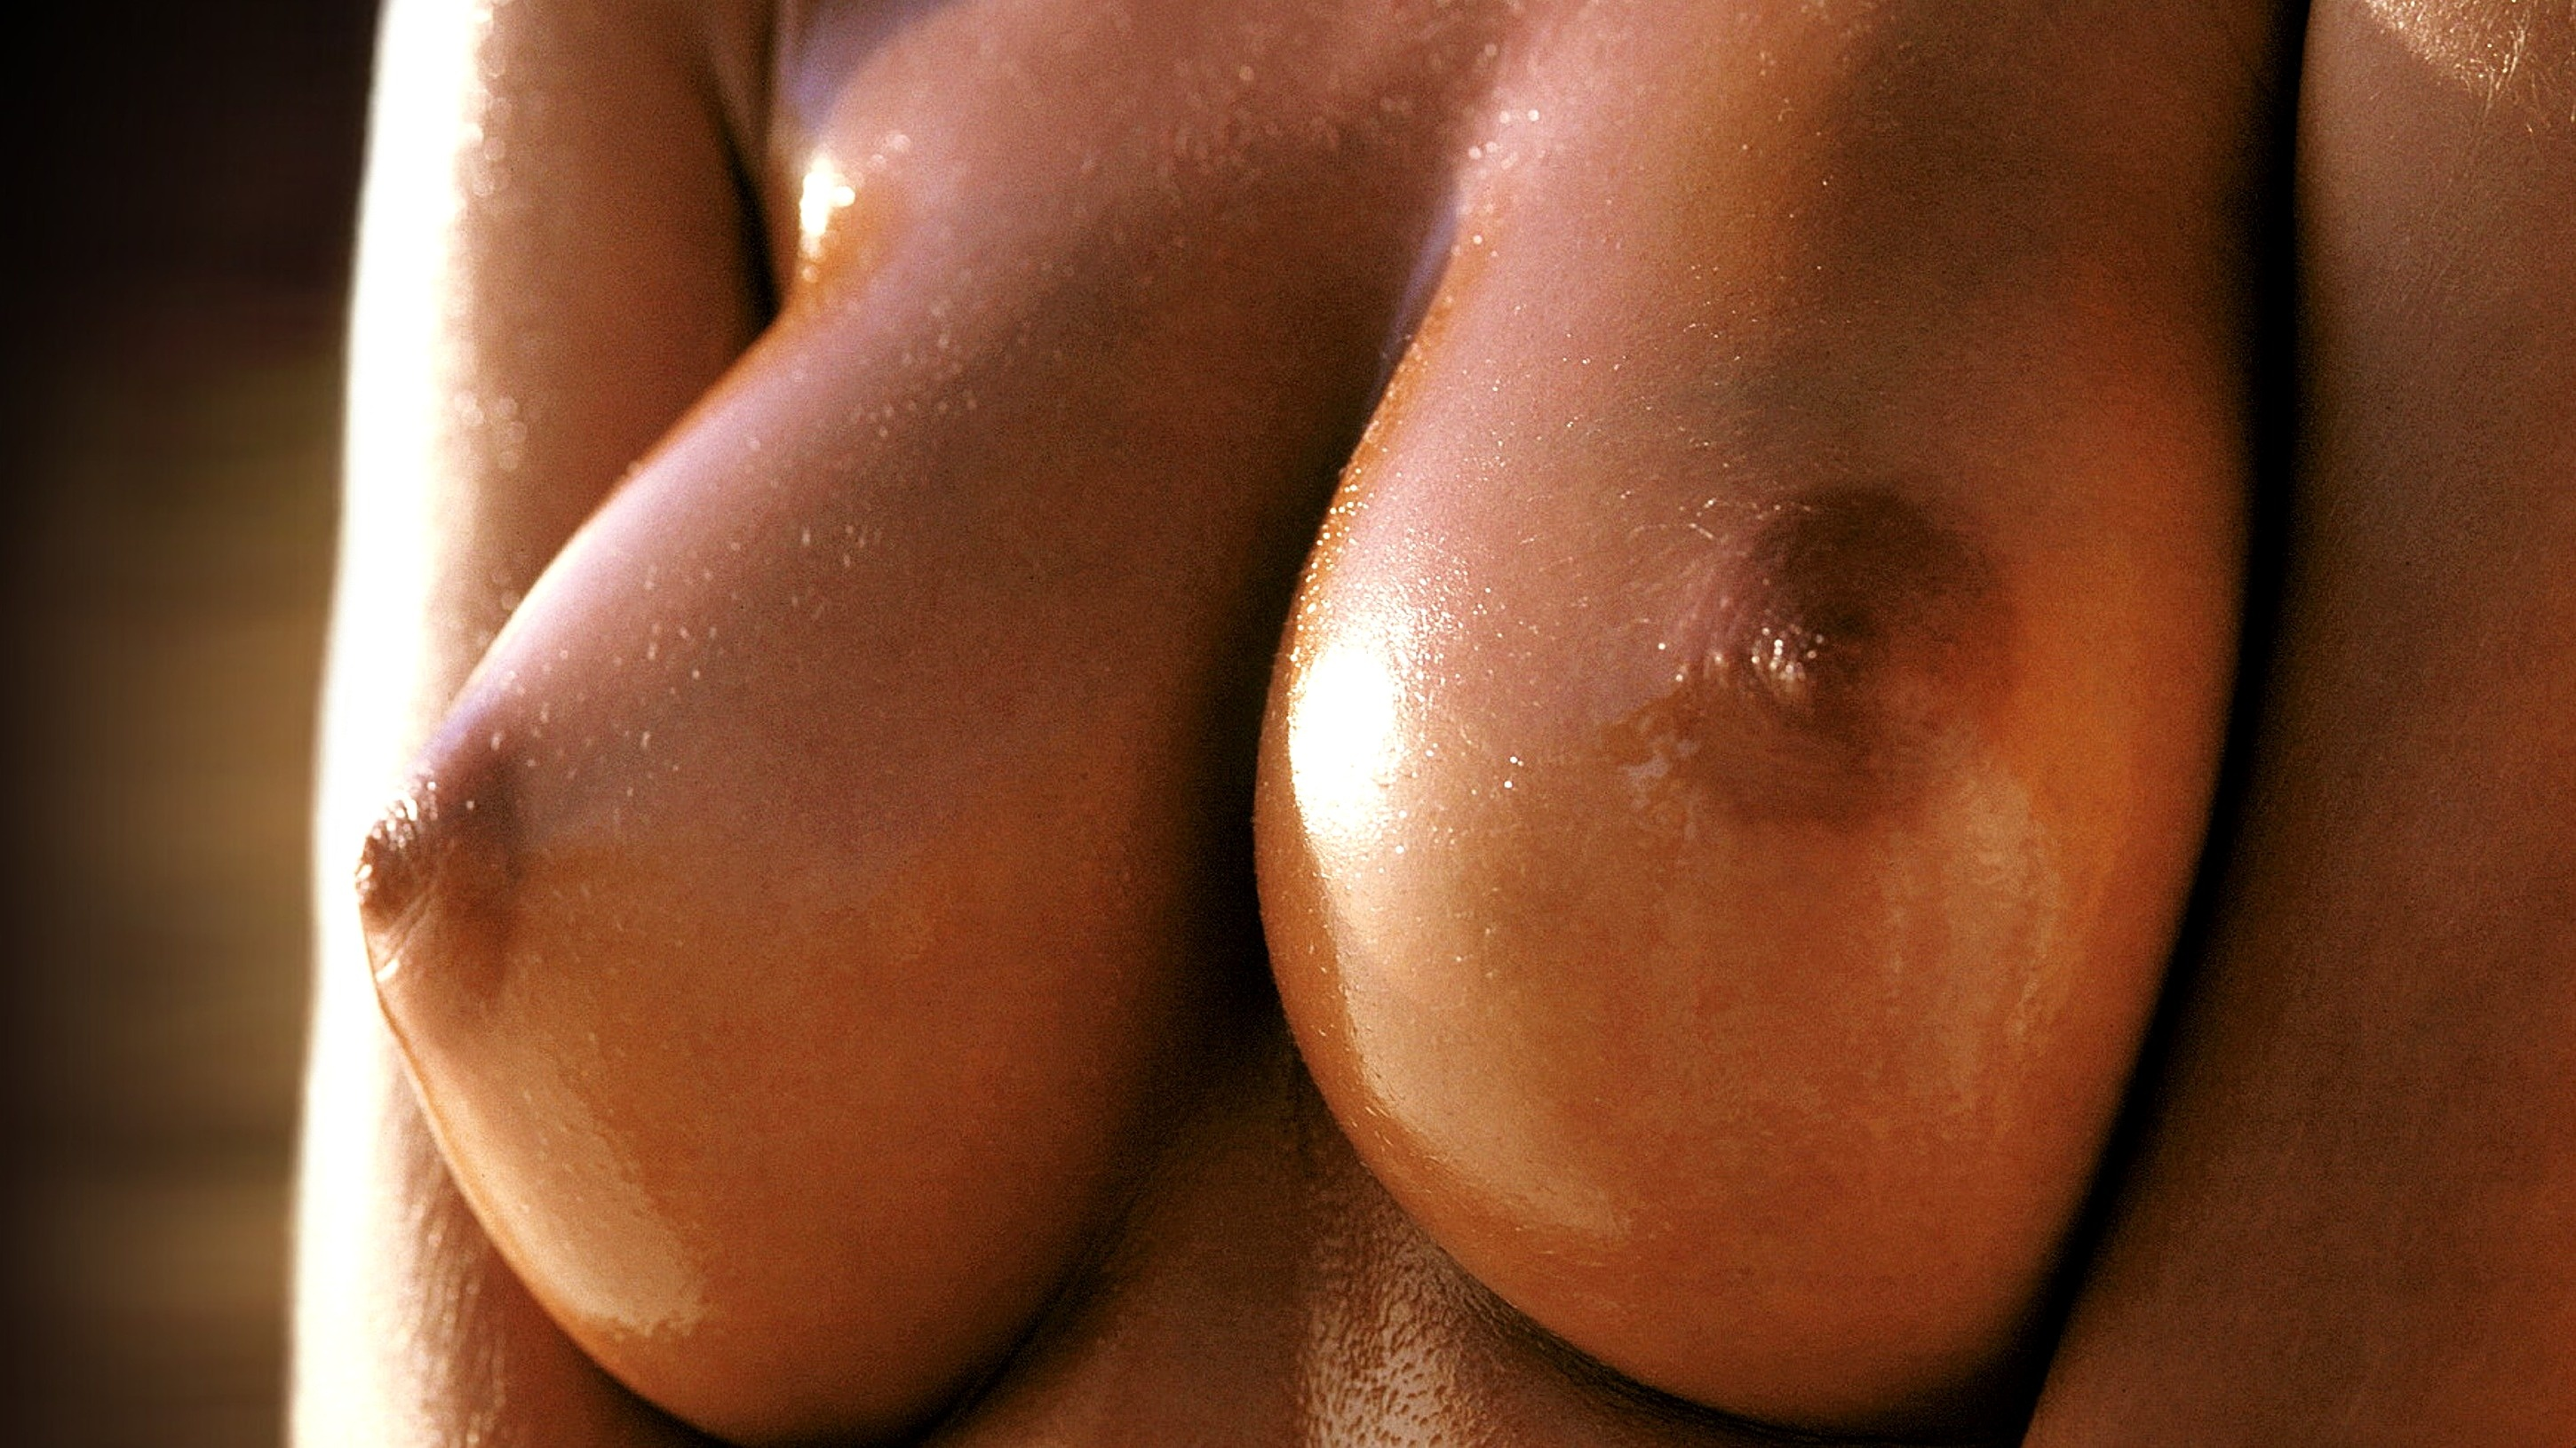 girl boobs close up naked